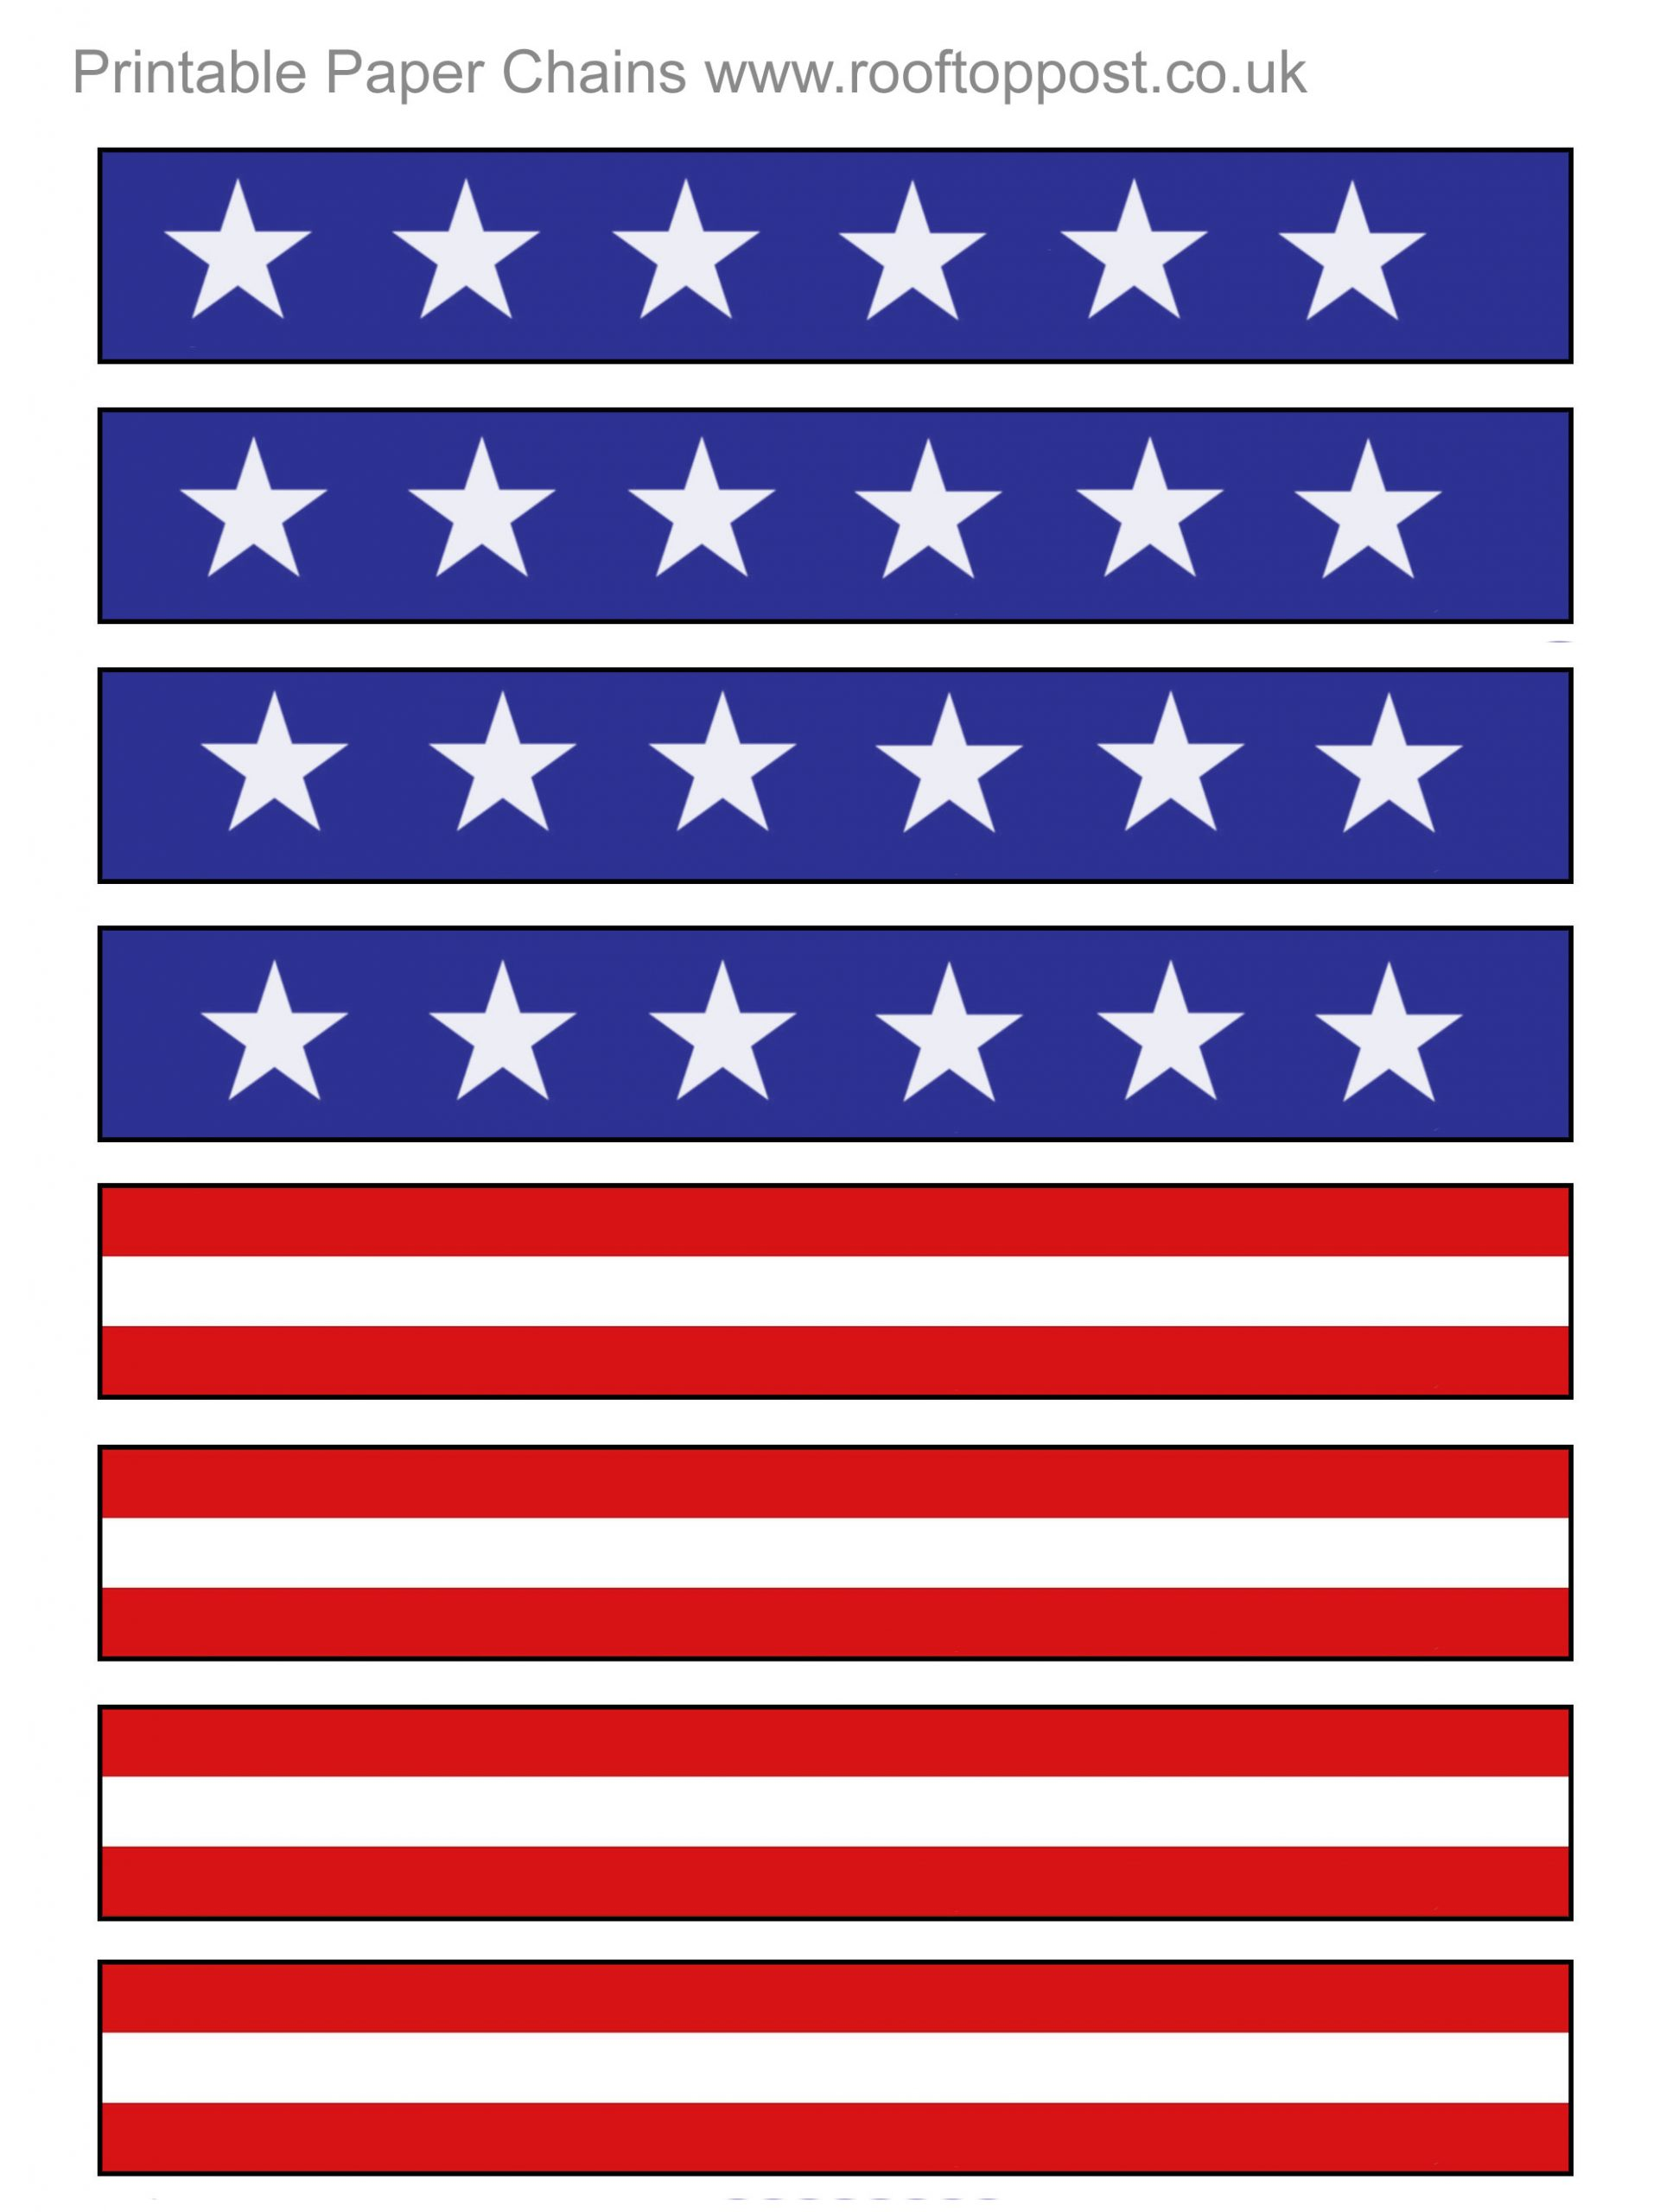 Printable paper chains with a US flag stars and stripes design. Useful for Independence Day and the 4th of July